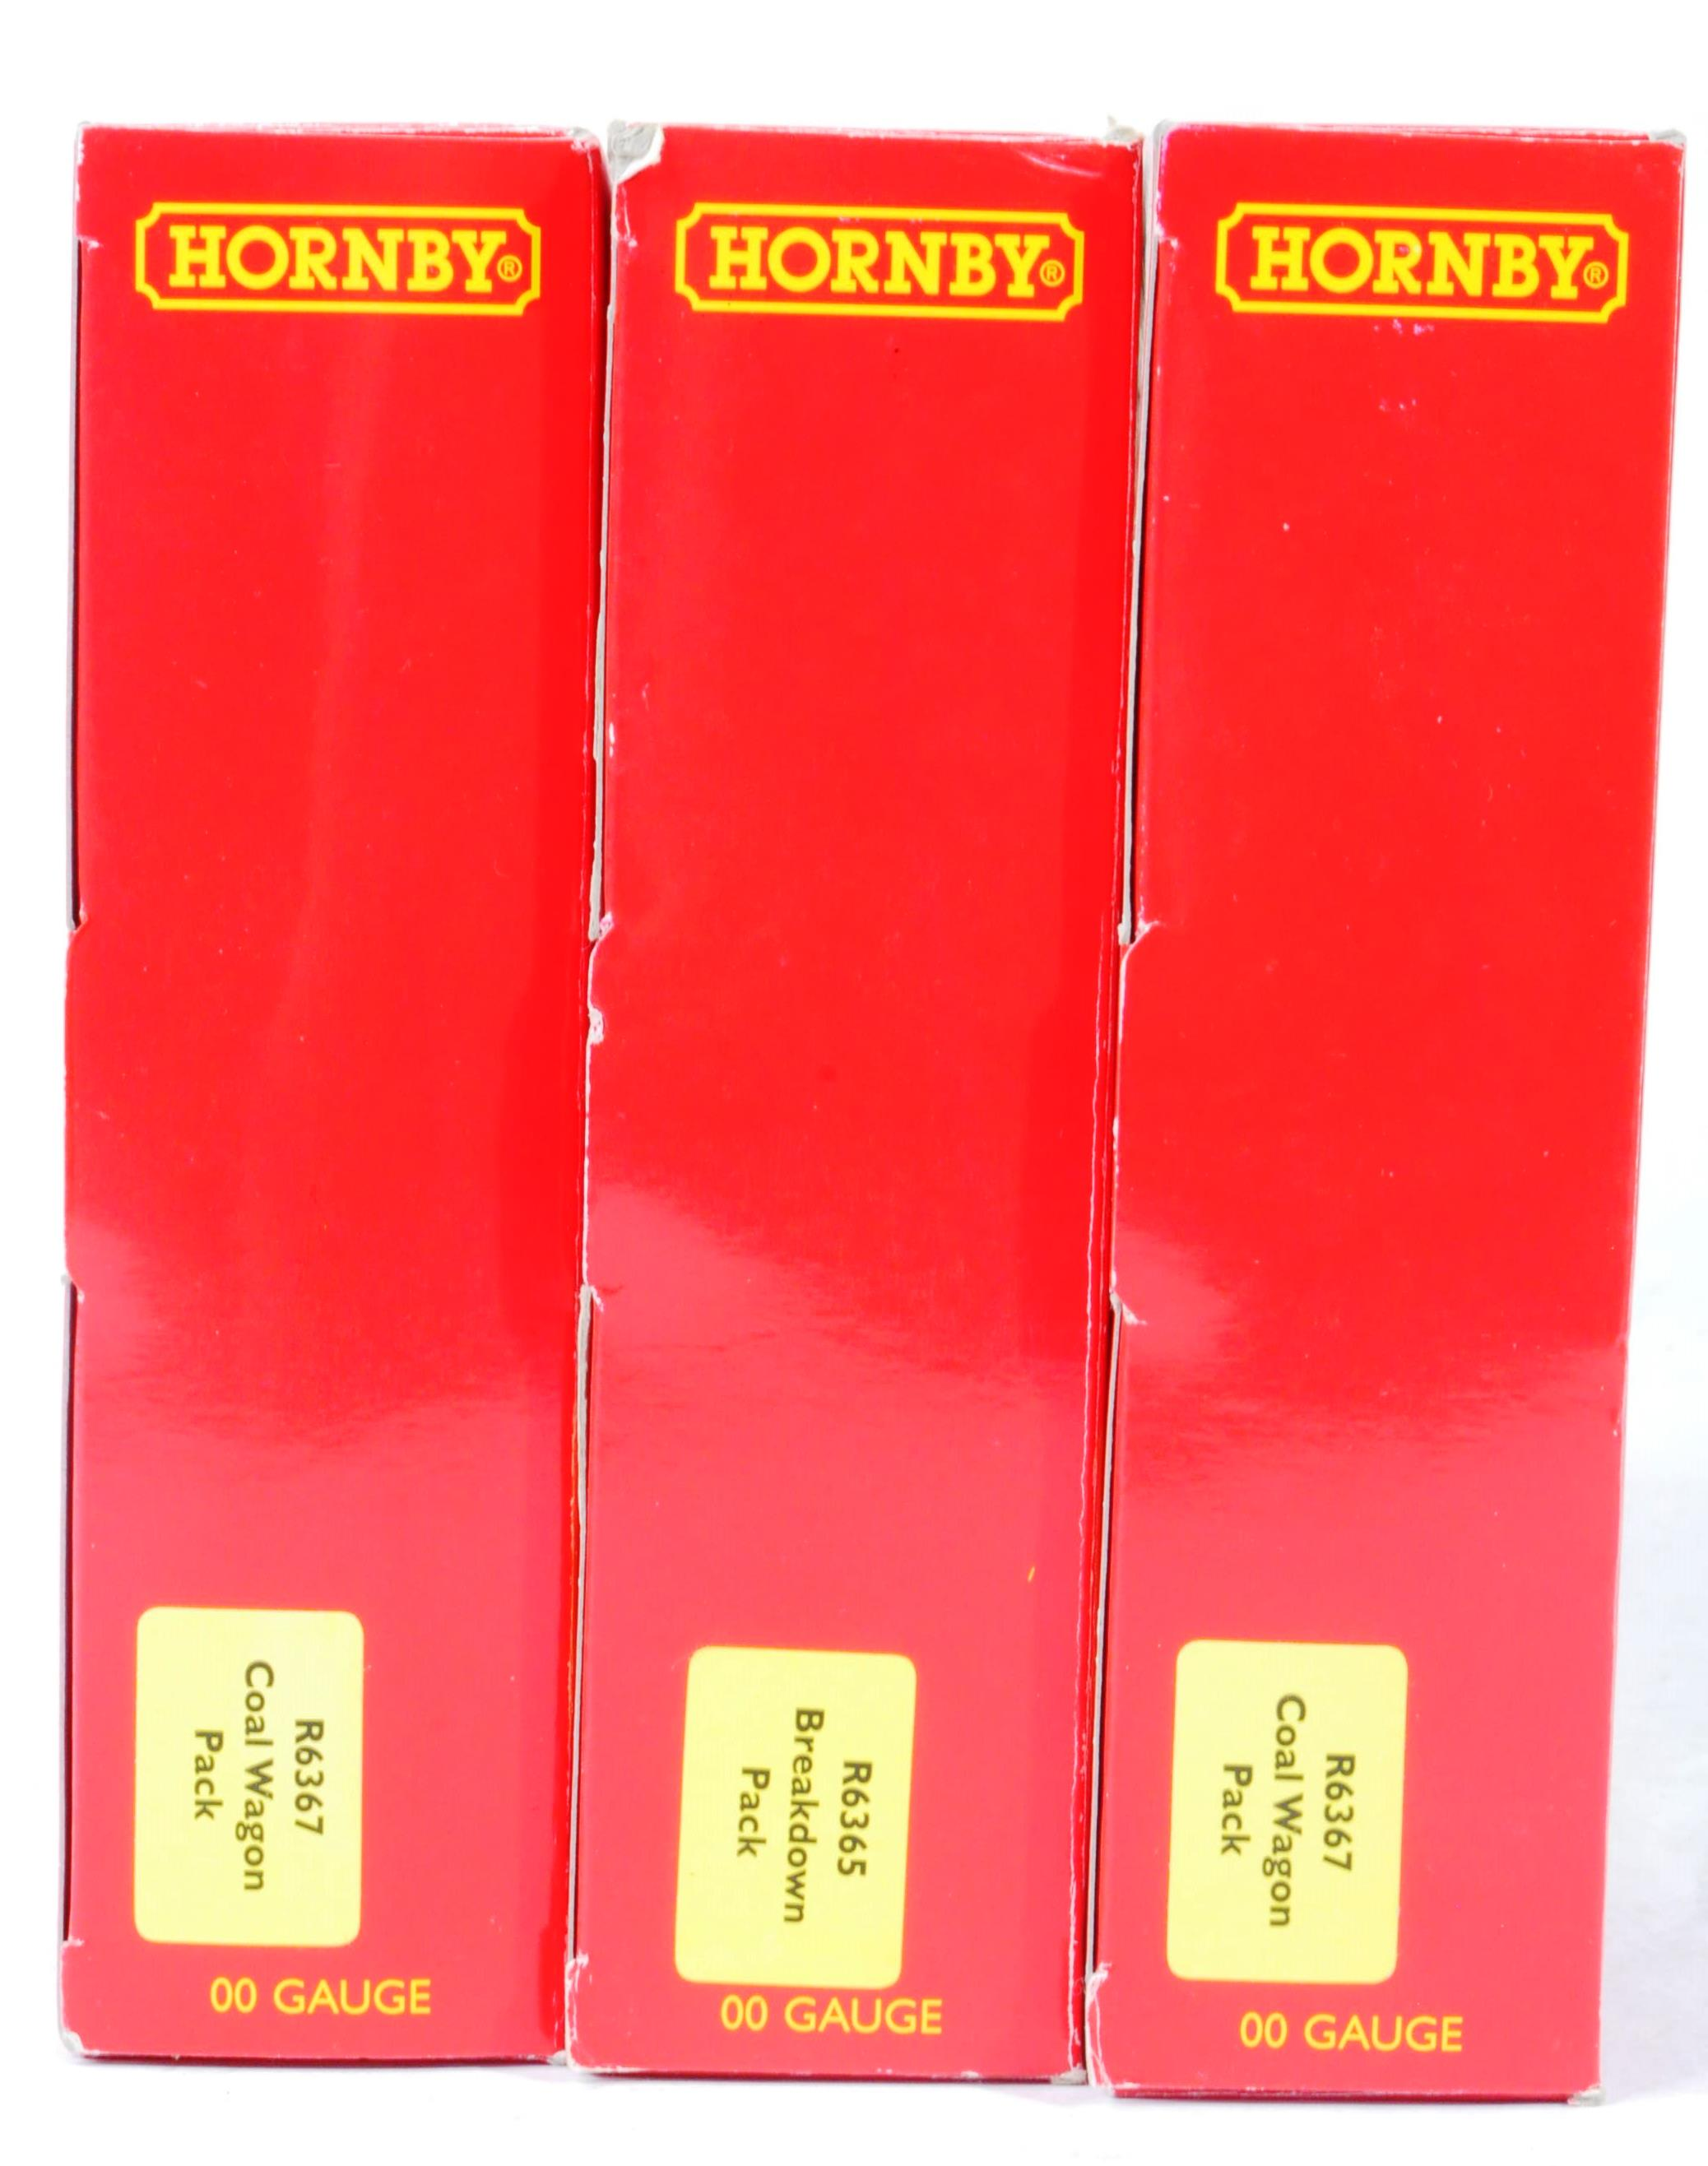 COLLECTION OF HORNBY 00 GAUGE MODEL RAILWAY ROLLING STOCK SETS - Image 5 of 5